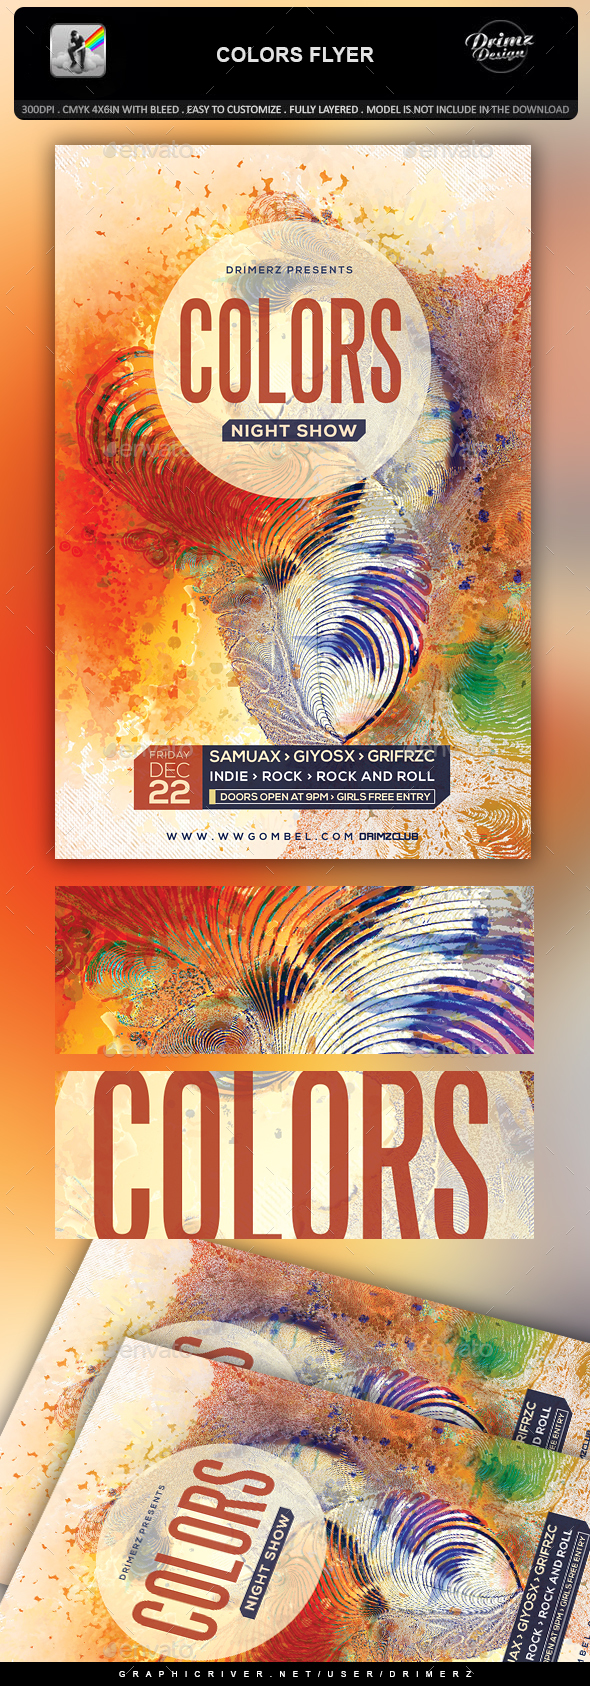 Colors Flyer - Events Flyers